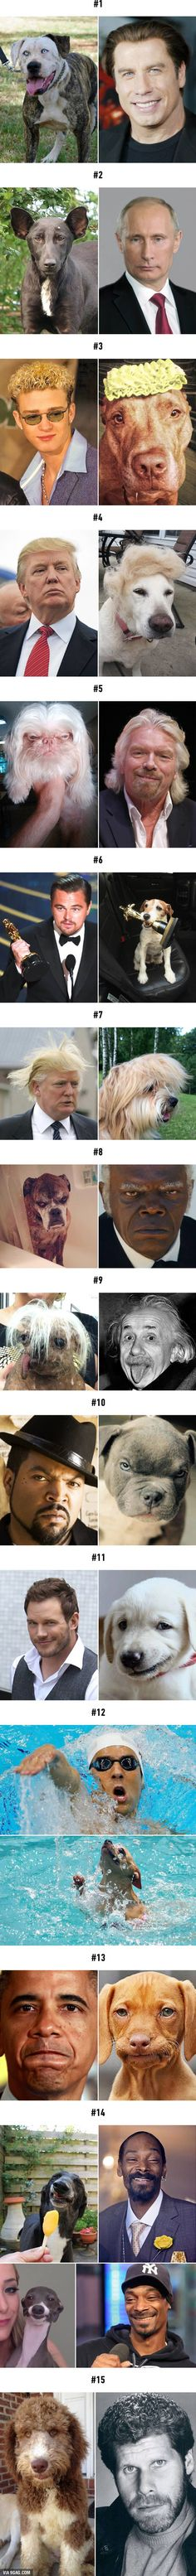 Celebrities Matched To Their Dog Look-Alikes Funny Animal Jokes, Cute Funny Animals, Funny Animal Pictures, Funny Dogs, Cute Dogs, Cute Puppies, Very Funny Memes, Funny Video Memes, Funny Relatable Memes